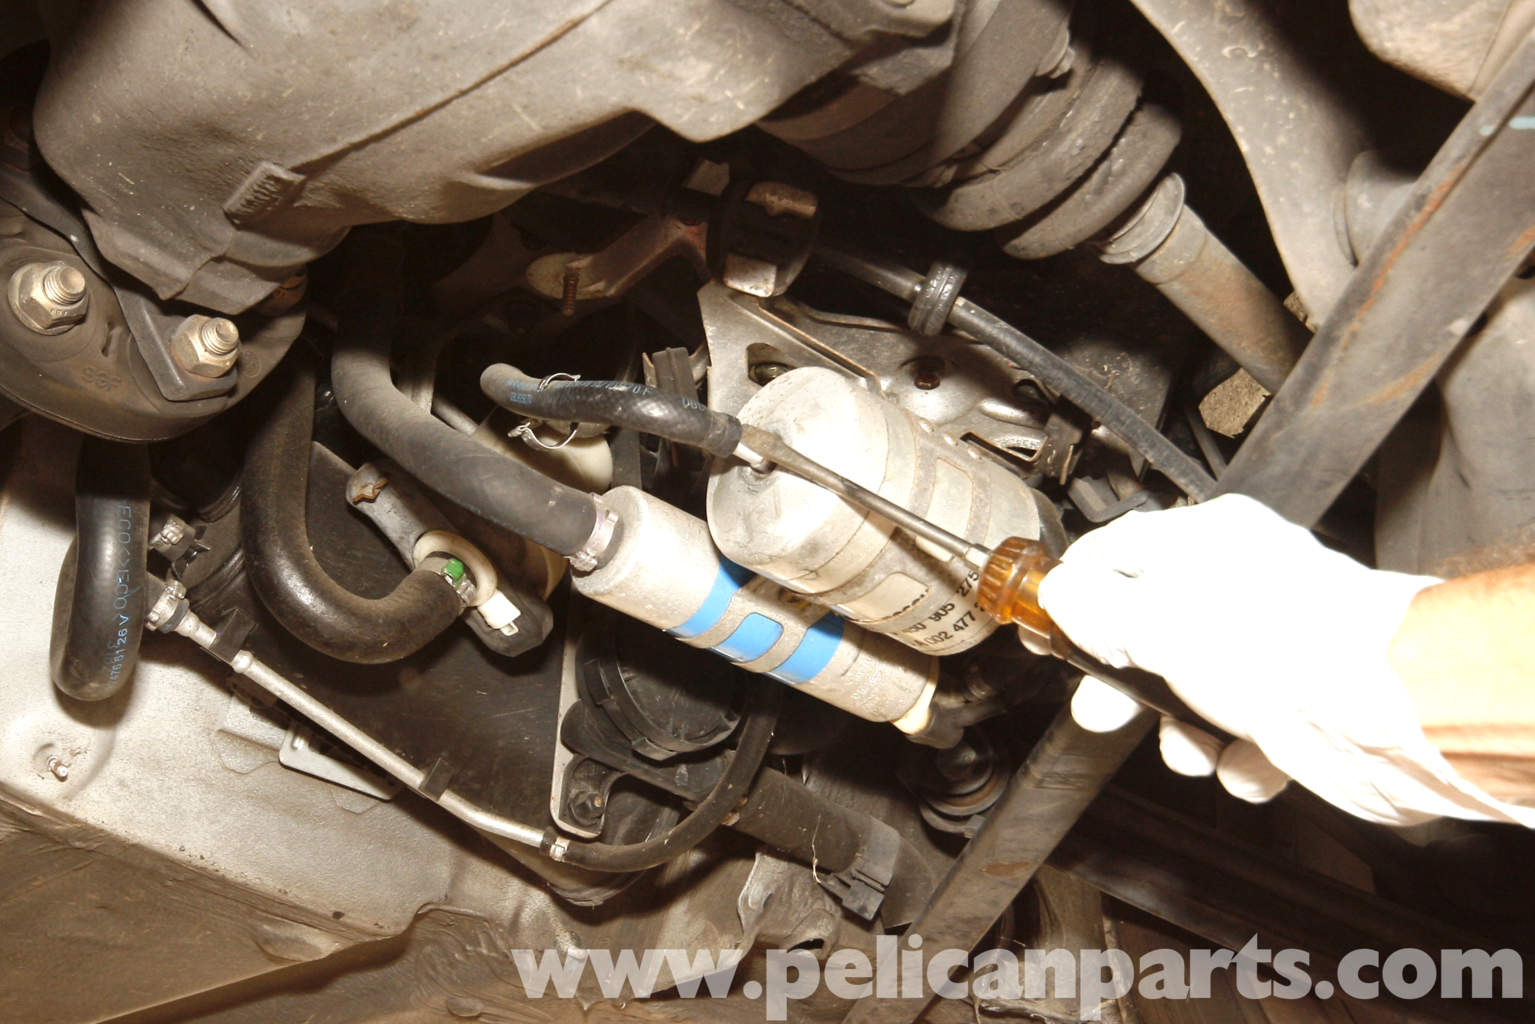 09 FUEL Fuel Filter Replacement on fiat 500 fuel pump